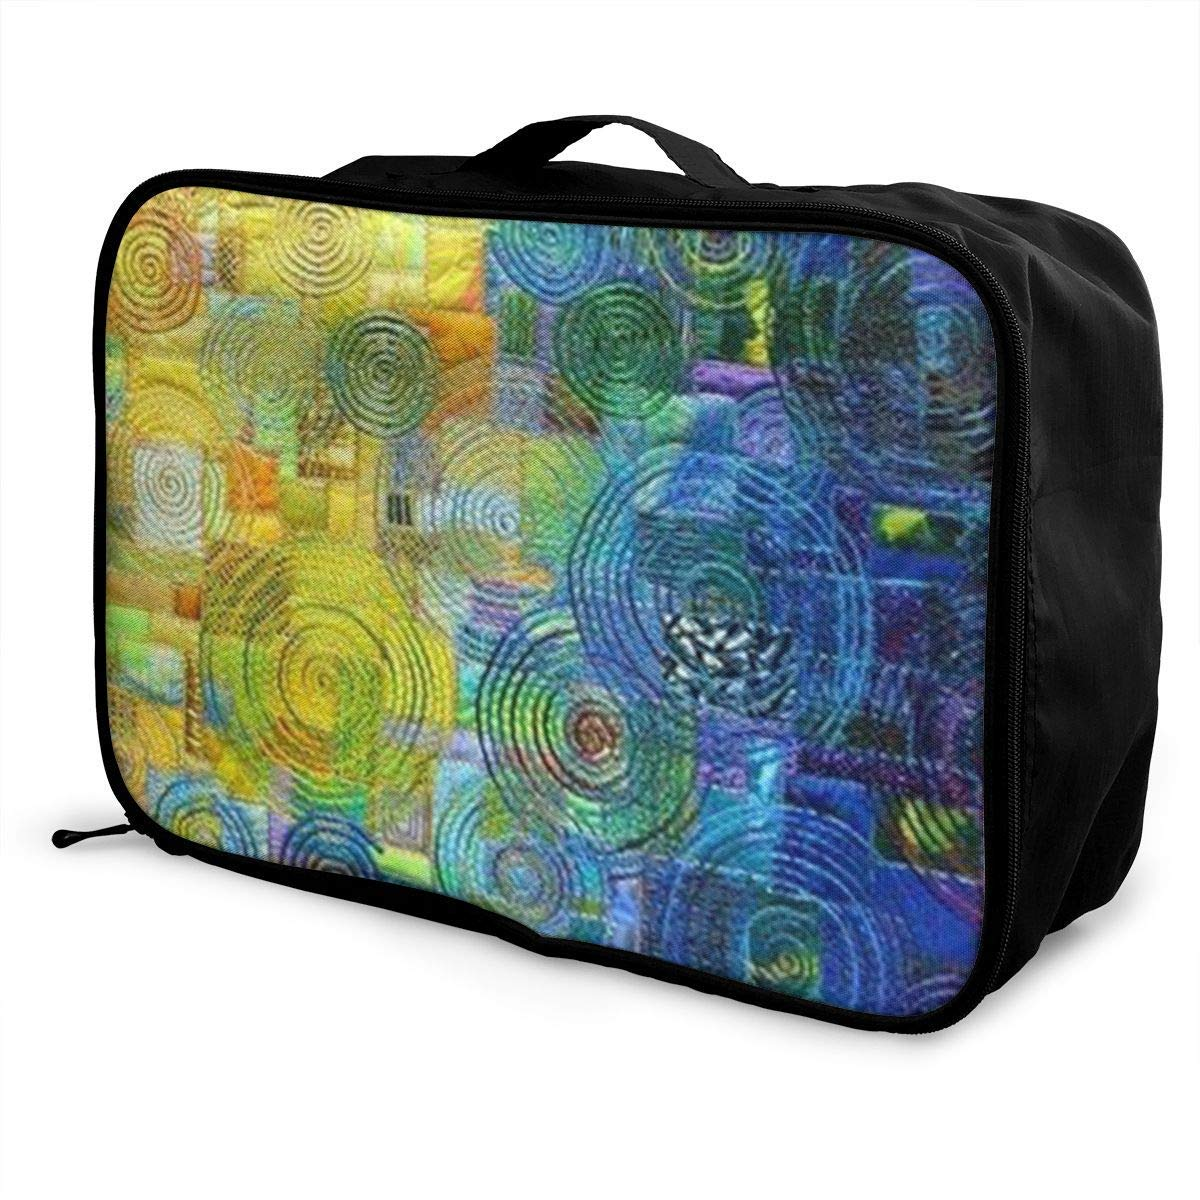 Portable Luggage Duffel Bag Colorful Spider Web Travel Bags Carry-on In Trolley Handle